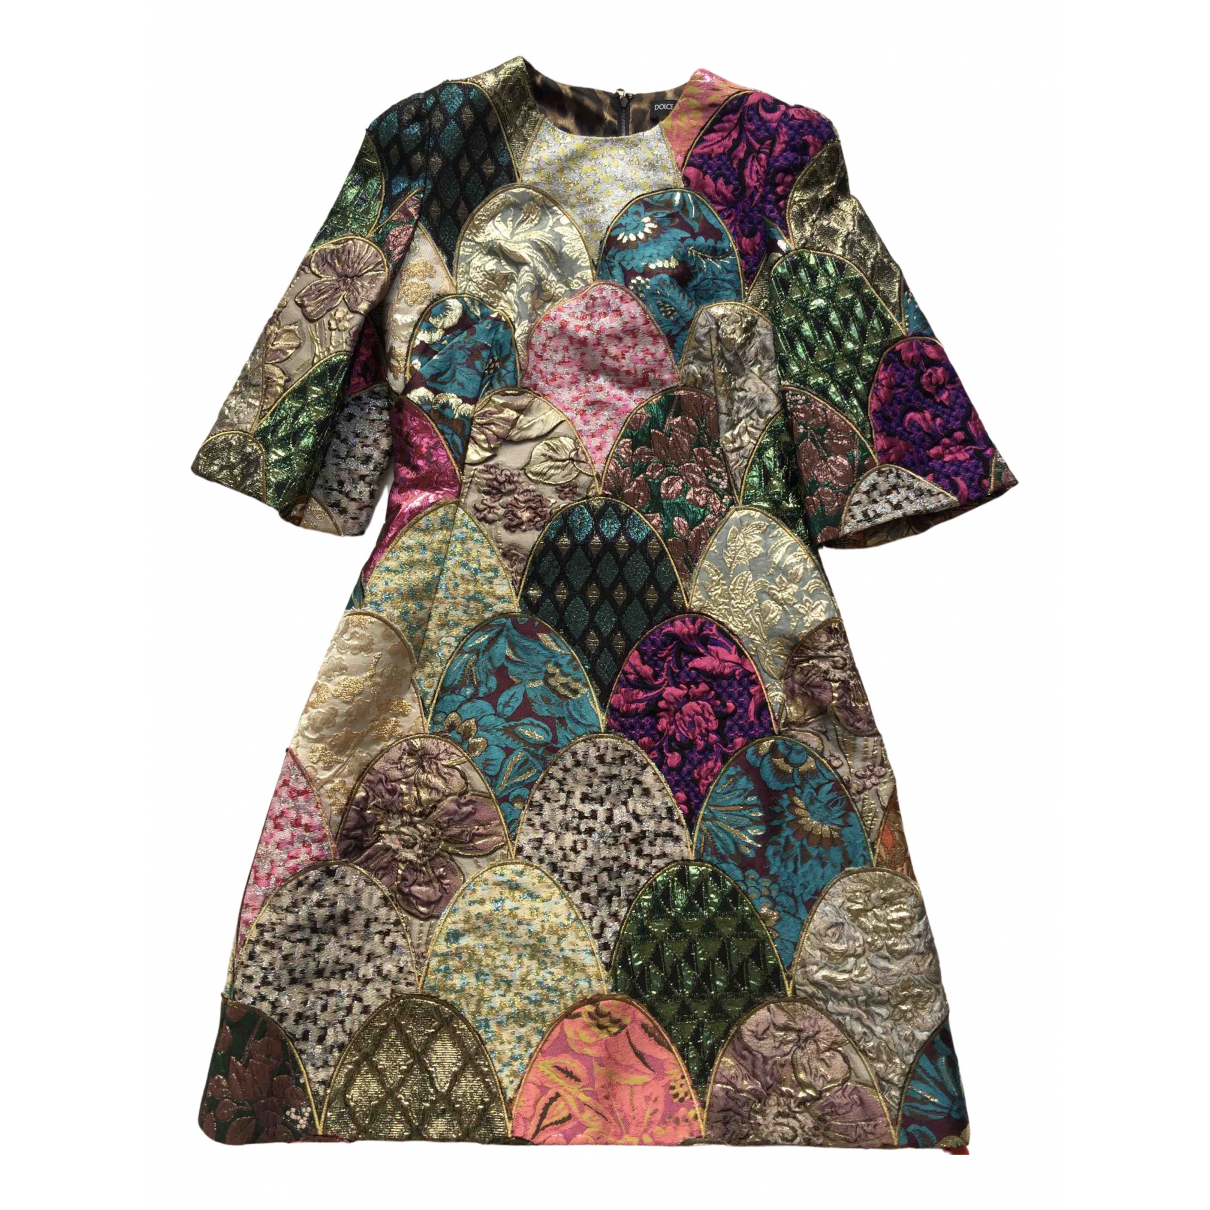 Dolce & Gabbana \N Multicolour dress for Women 38 IT